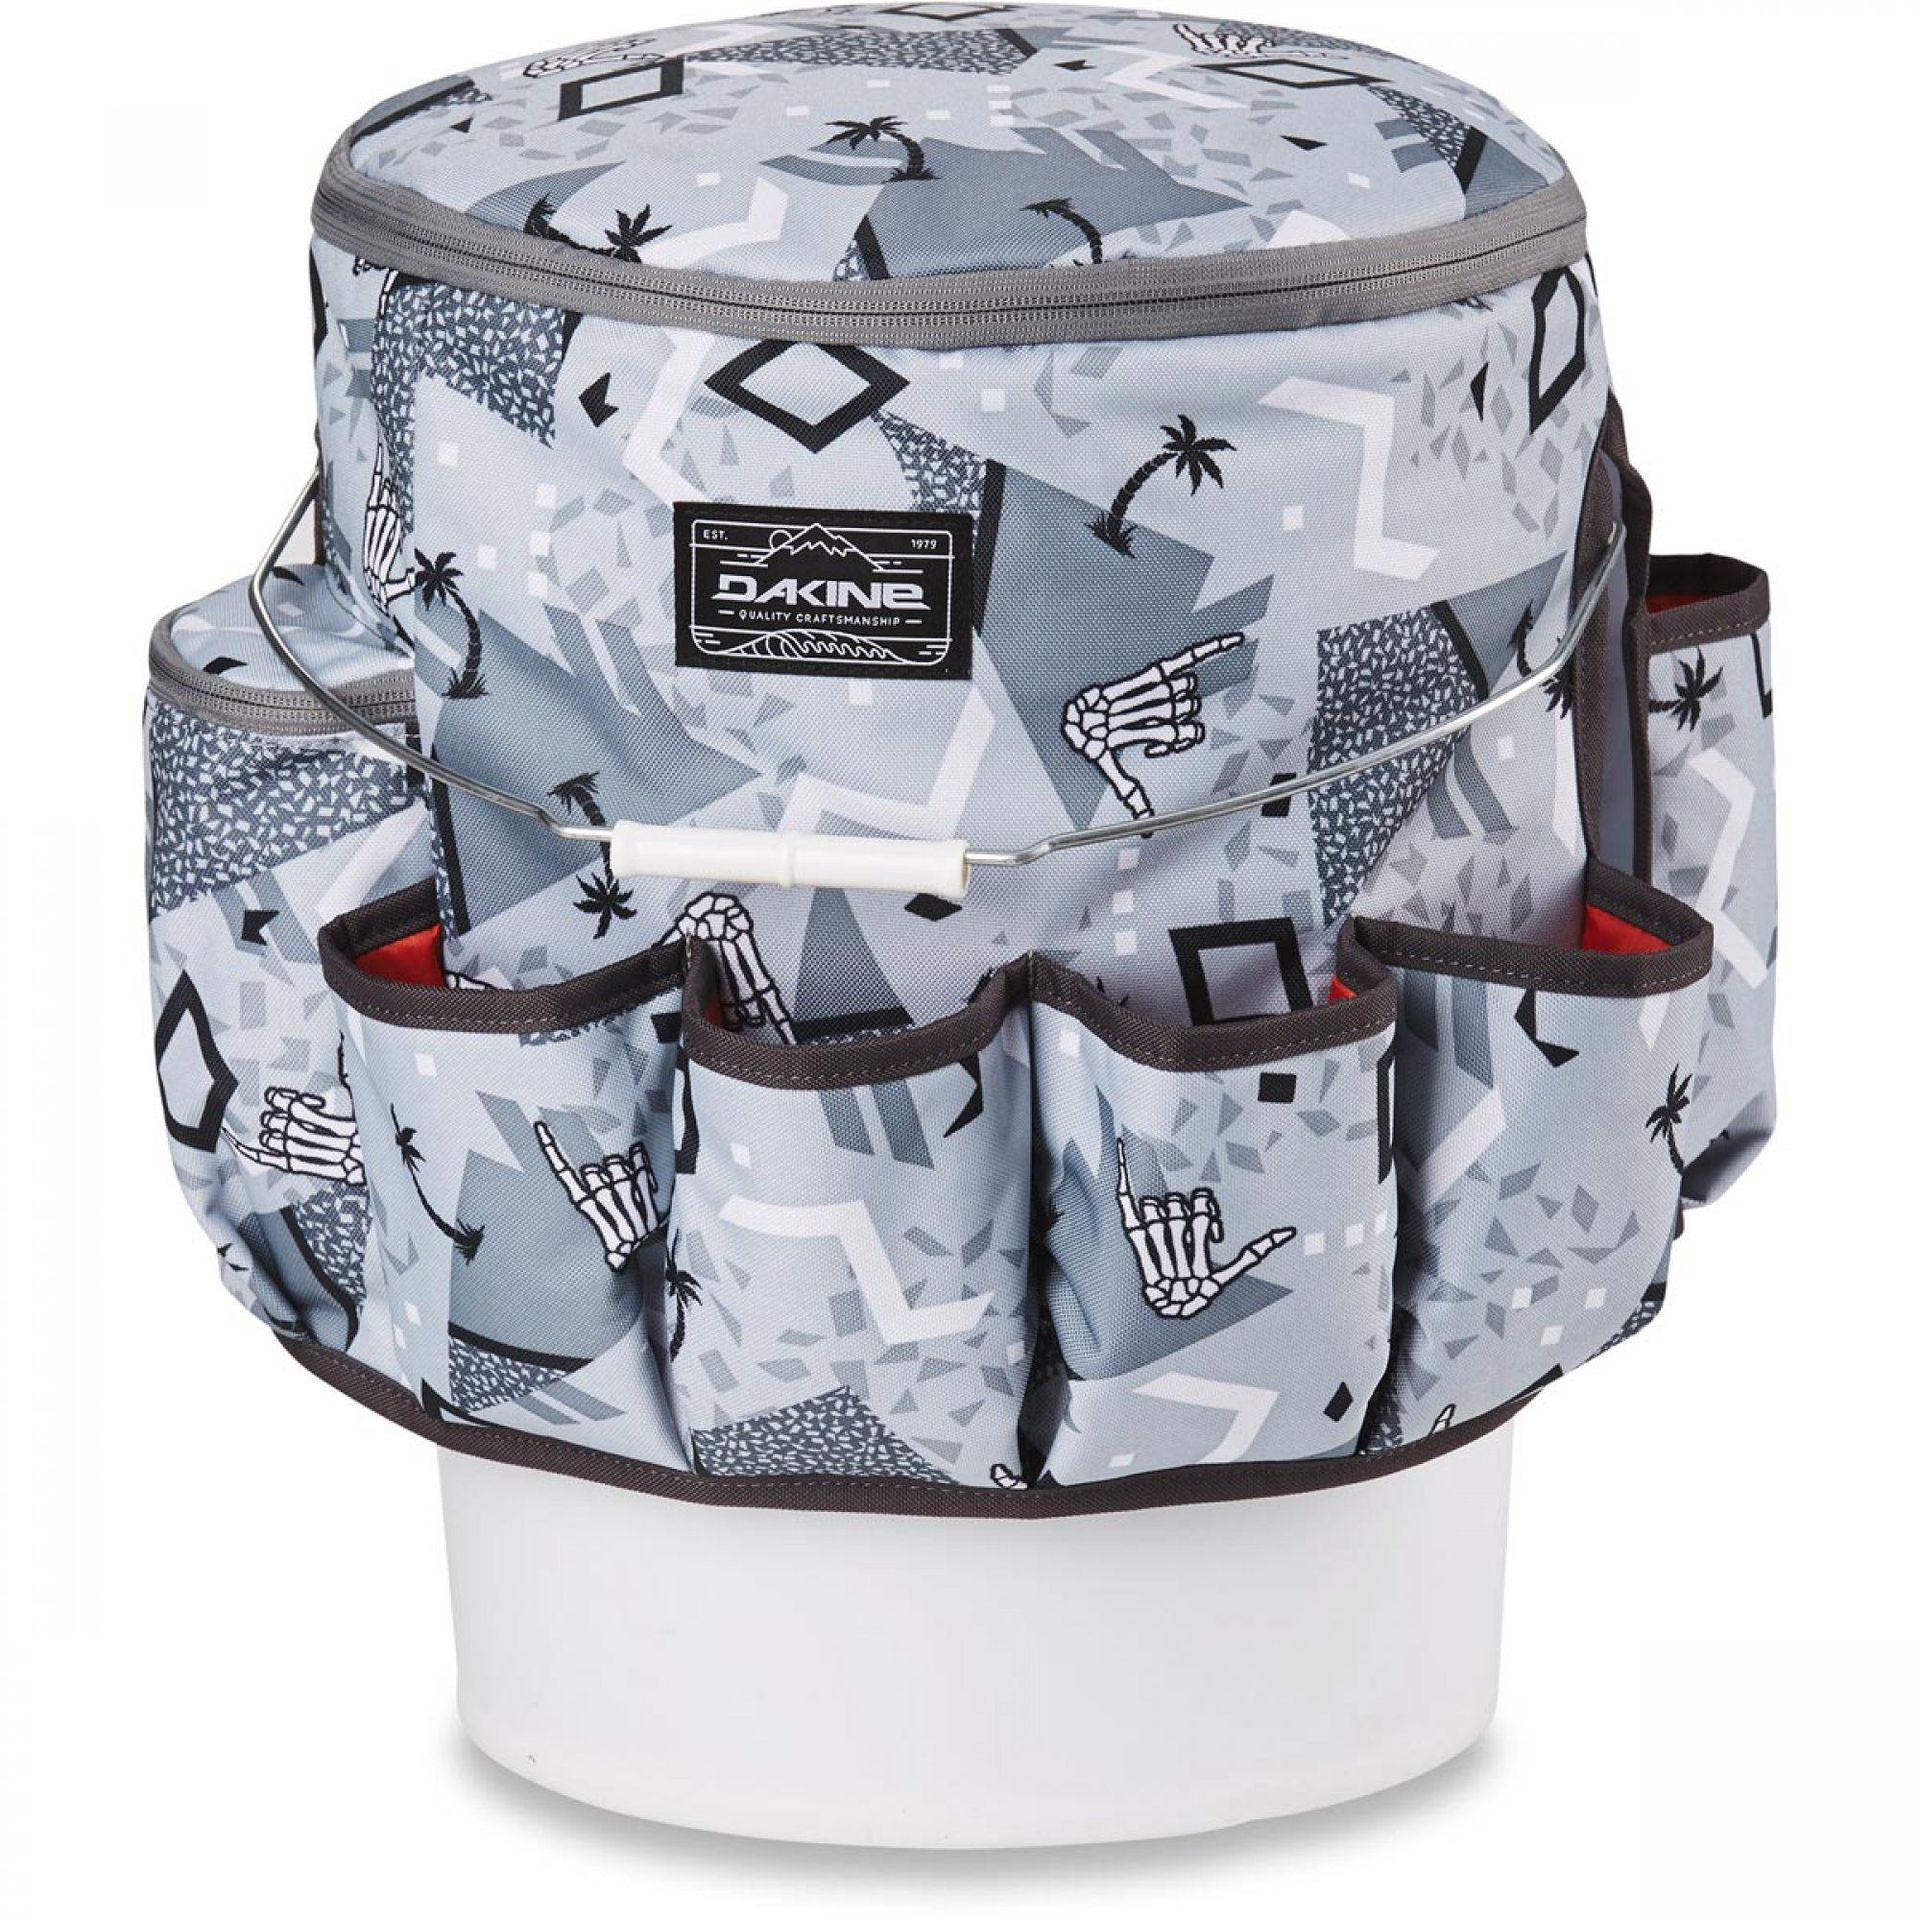 TORBA DAKINE PARTY BUCKET PARTY PALM